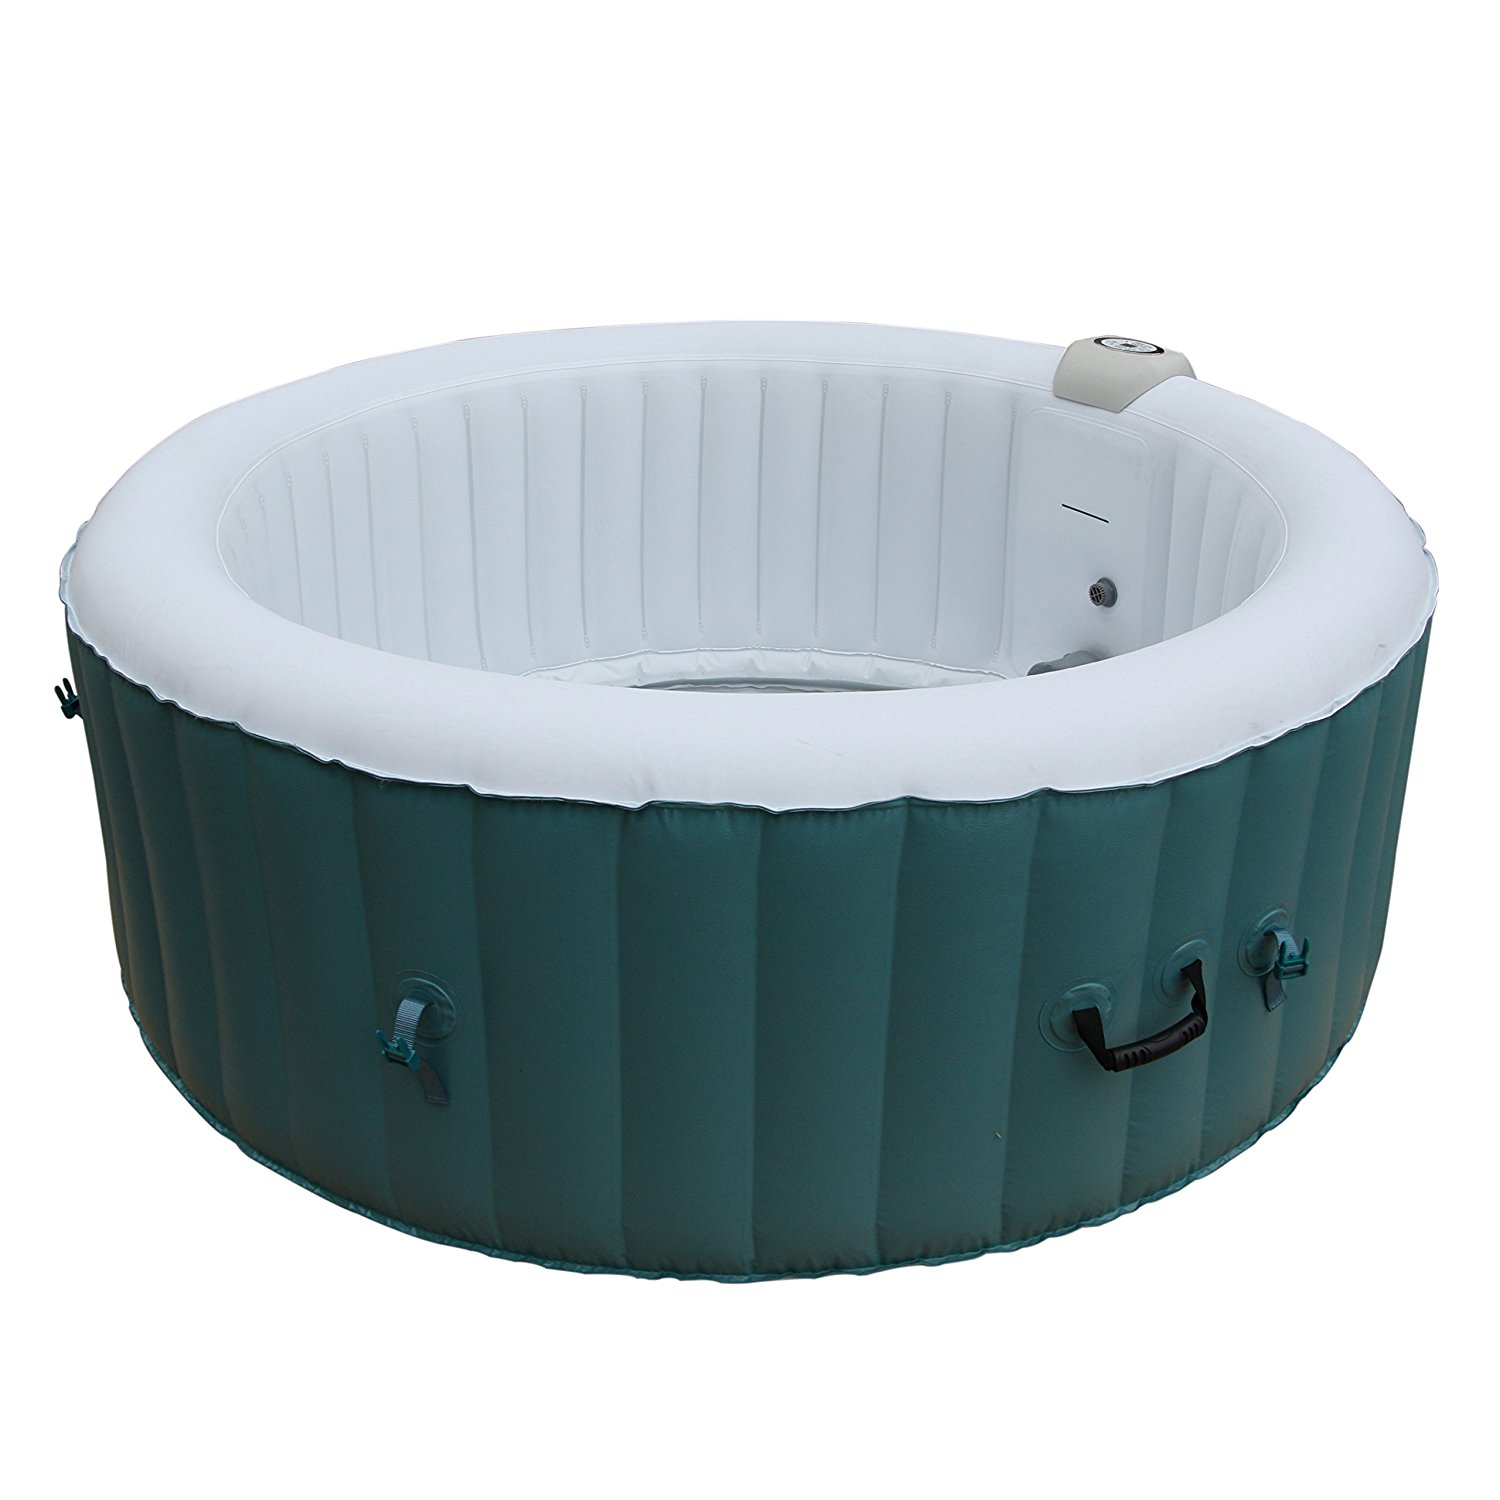 HTIR4BLL Round Inflatable Hot Tub Personal Spa, 4 Person, 215 Gallon, Light Blue